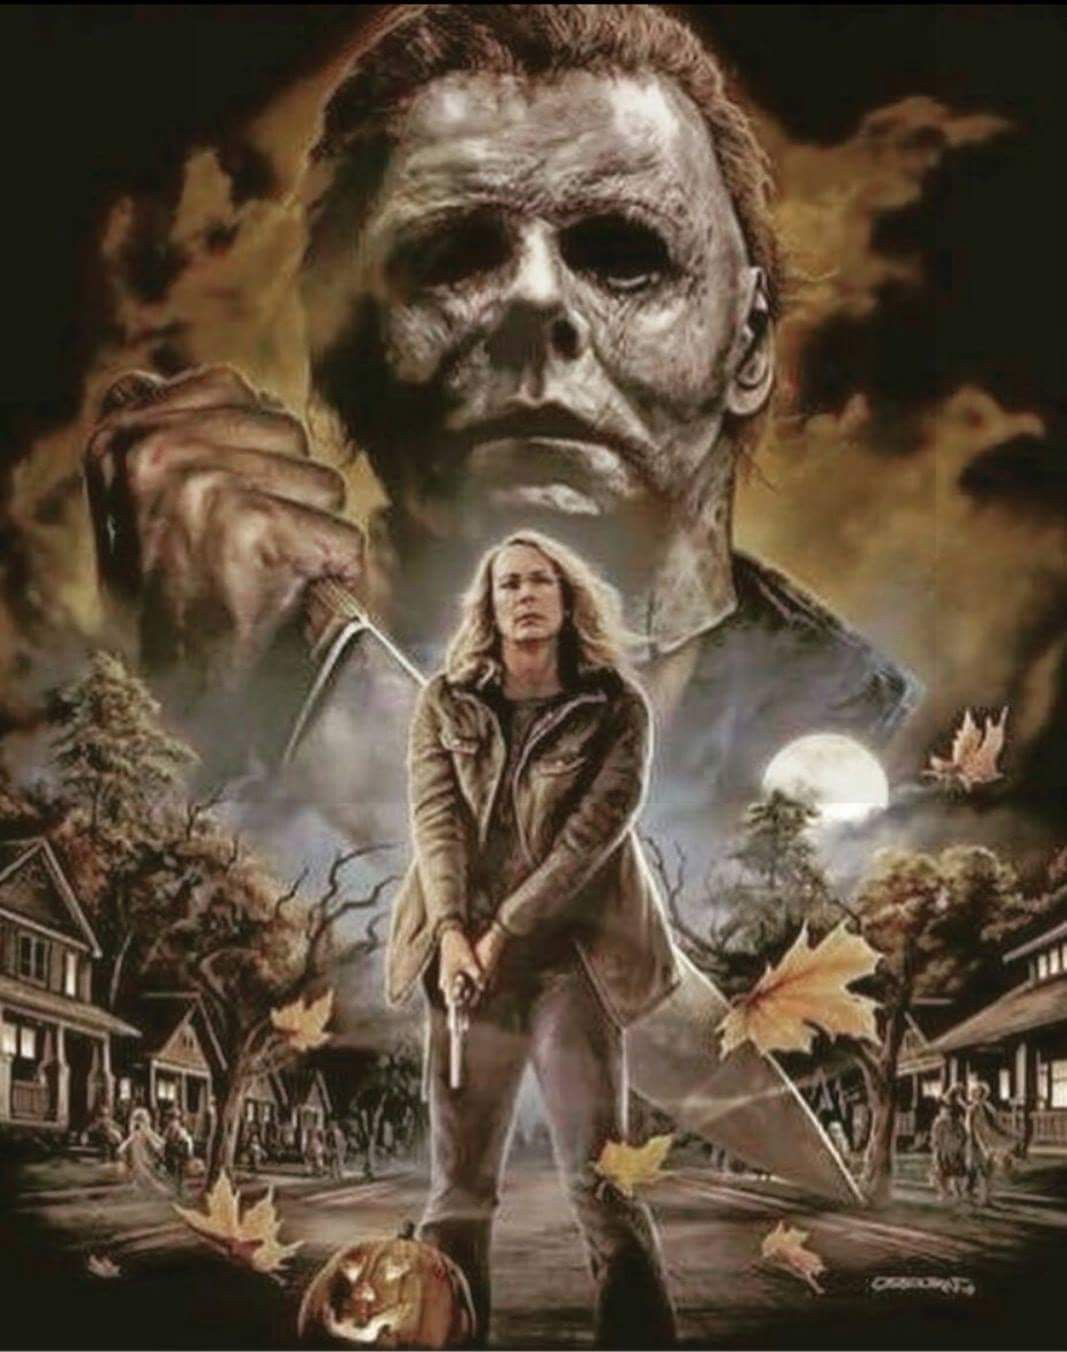 Pin by Bowens1010 on horror movies Horror movie art